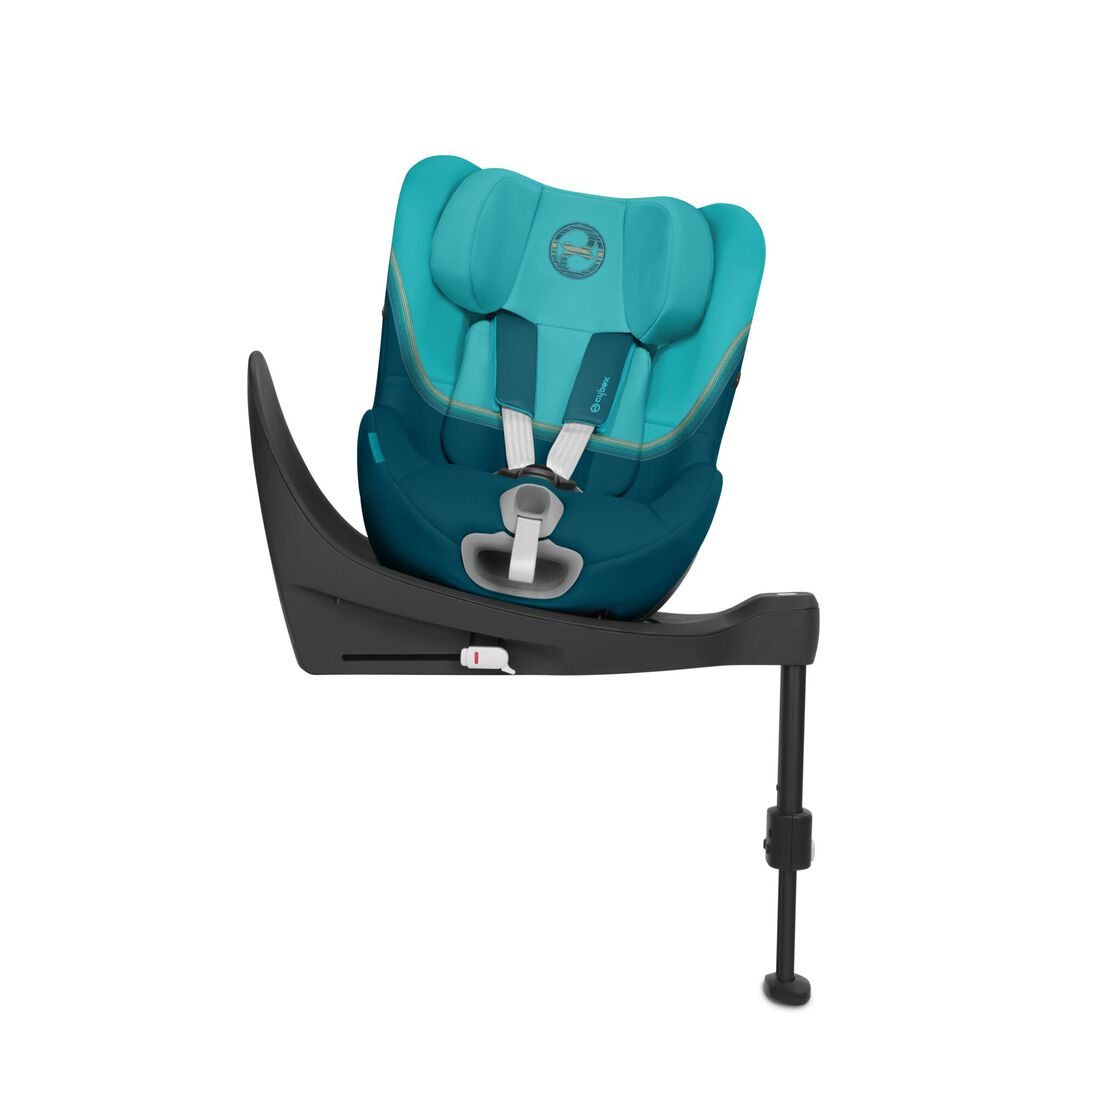 CYBEX Sirona S2 i-Size - River Blue in River Blue large image number 3